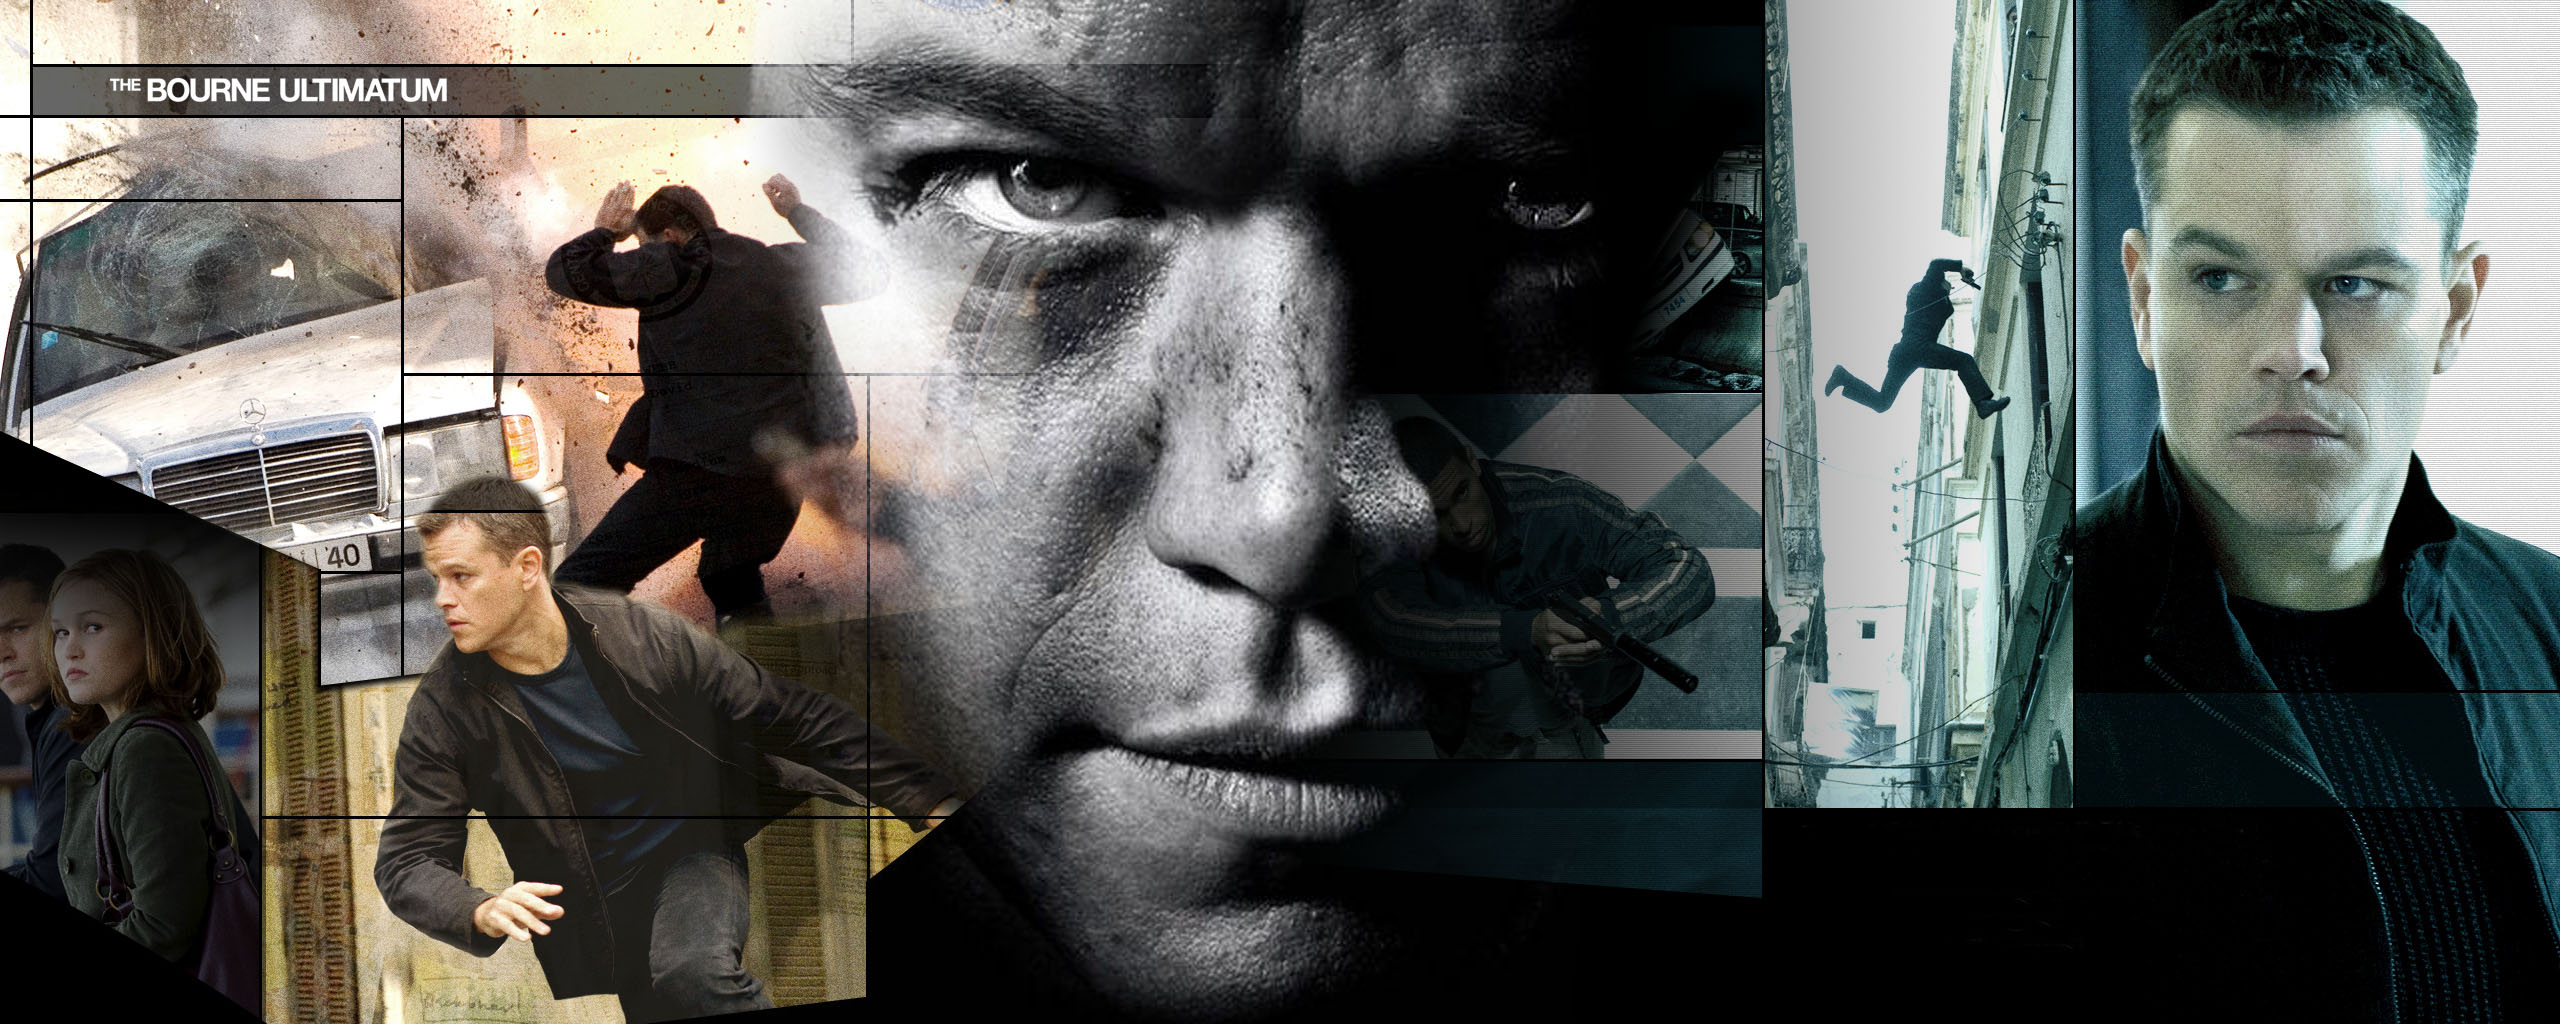 the_bourne_ultimatum_by_blackbeast